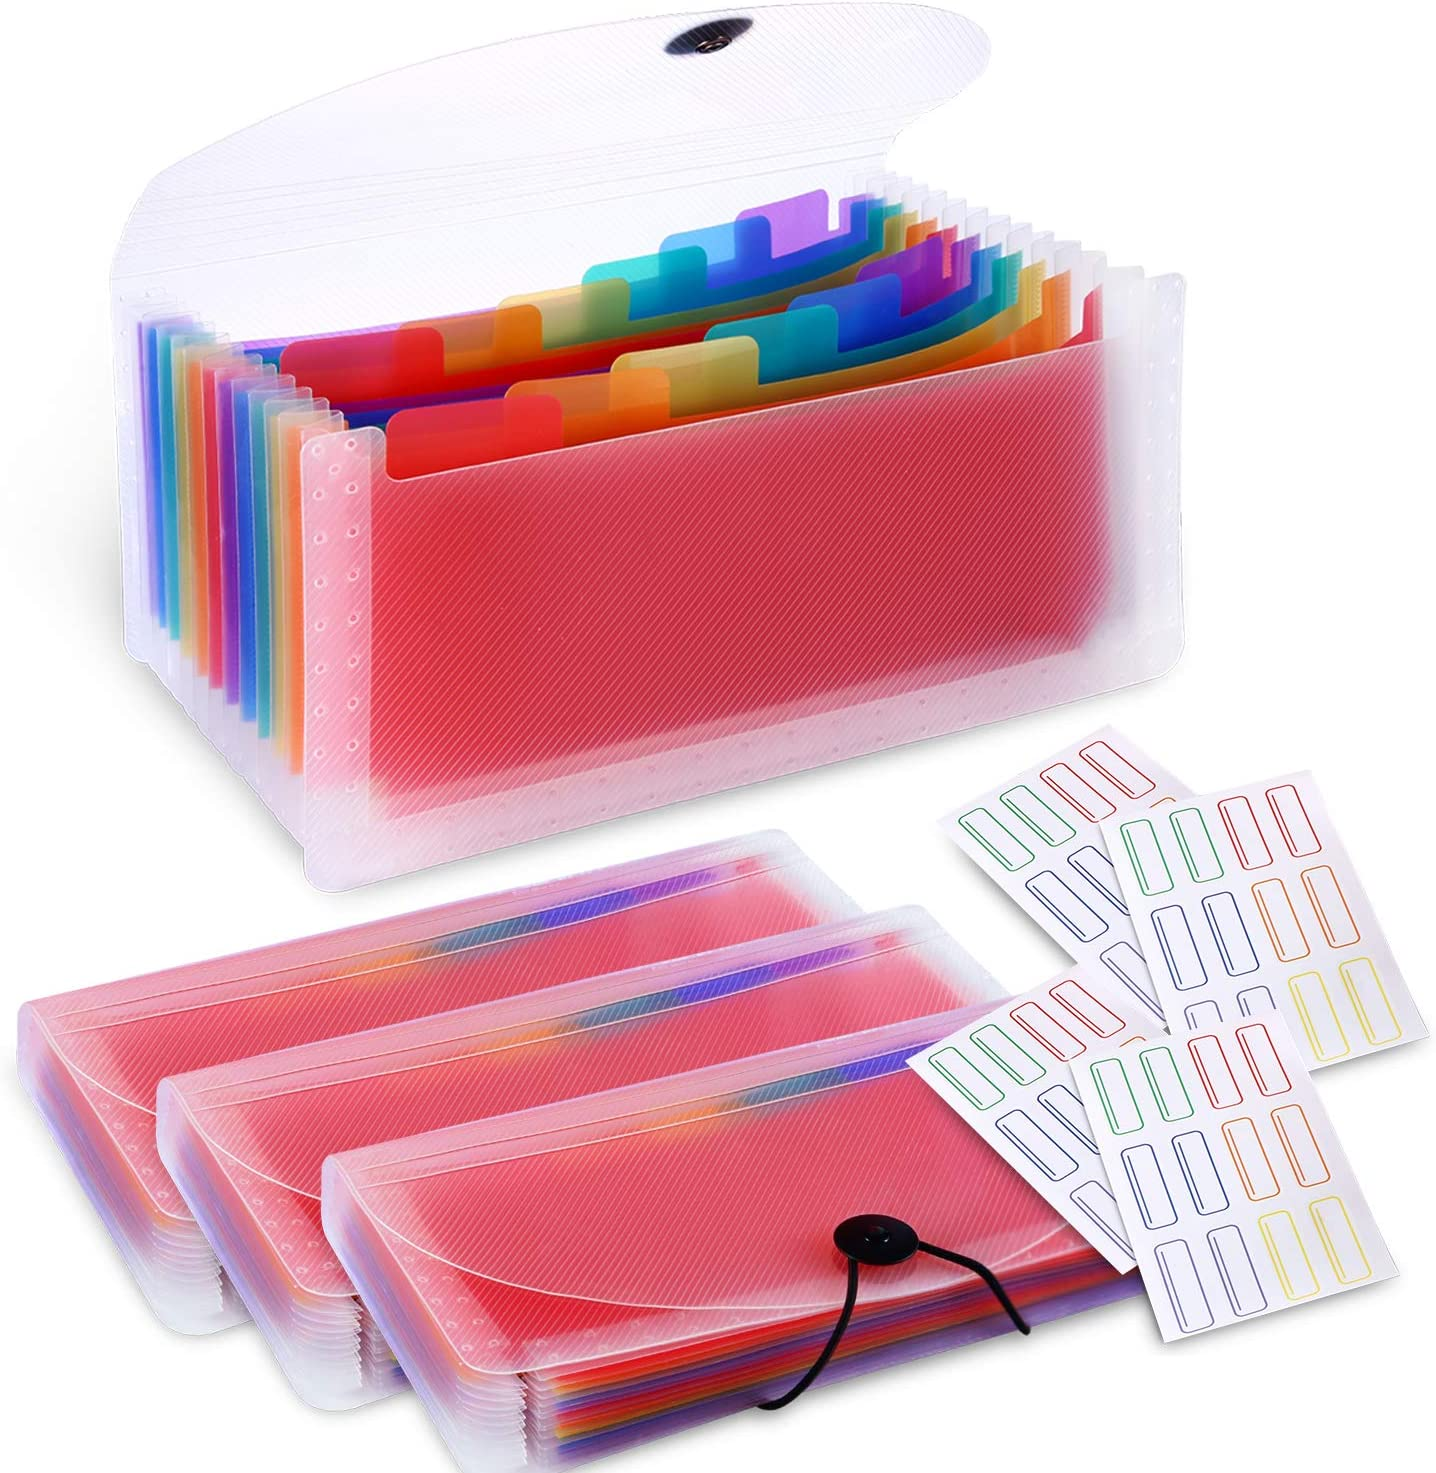 4 Pack 13-Pockets Accordion File Organizer, A6 Plastic Coupon Organizer Wallet Mini Expanding File Folder for Cards, Coupons, Receipt, Tax Item